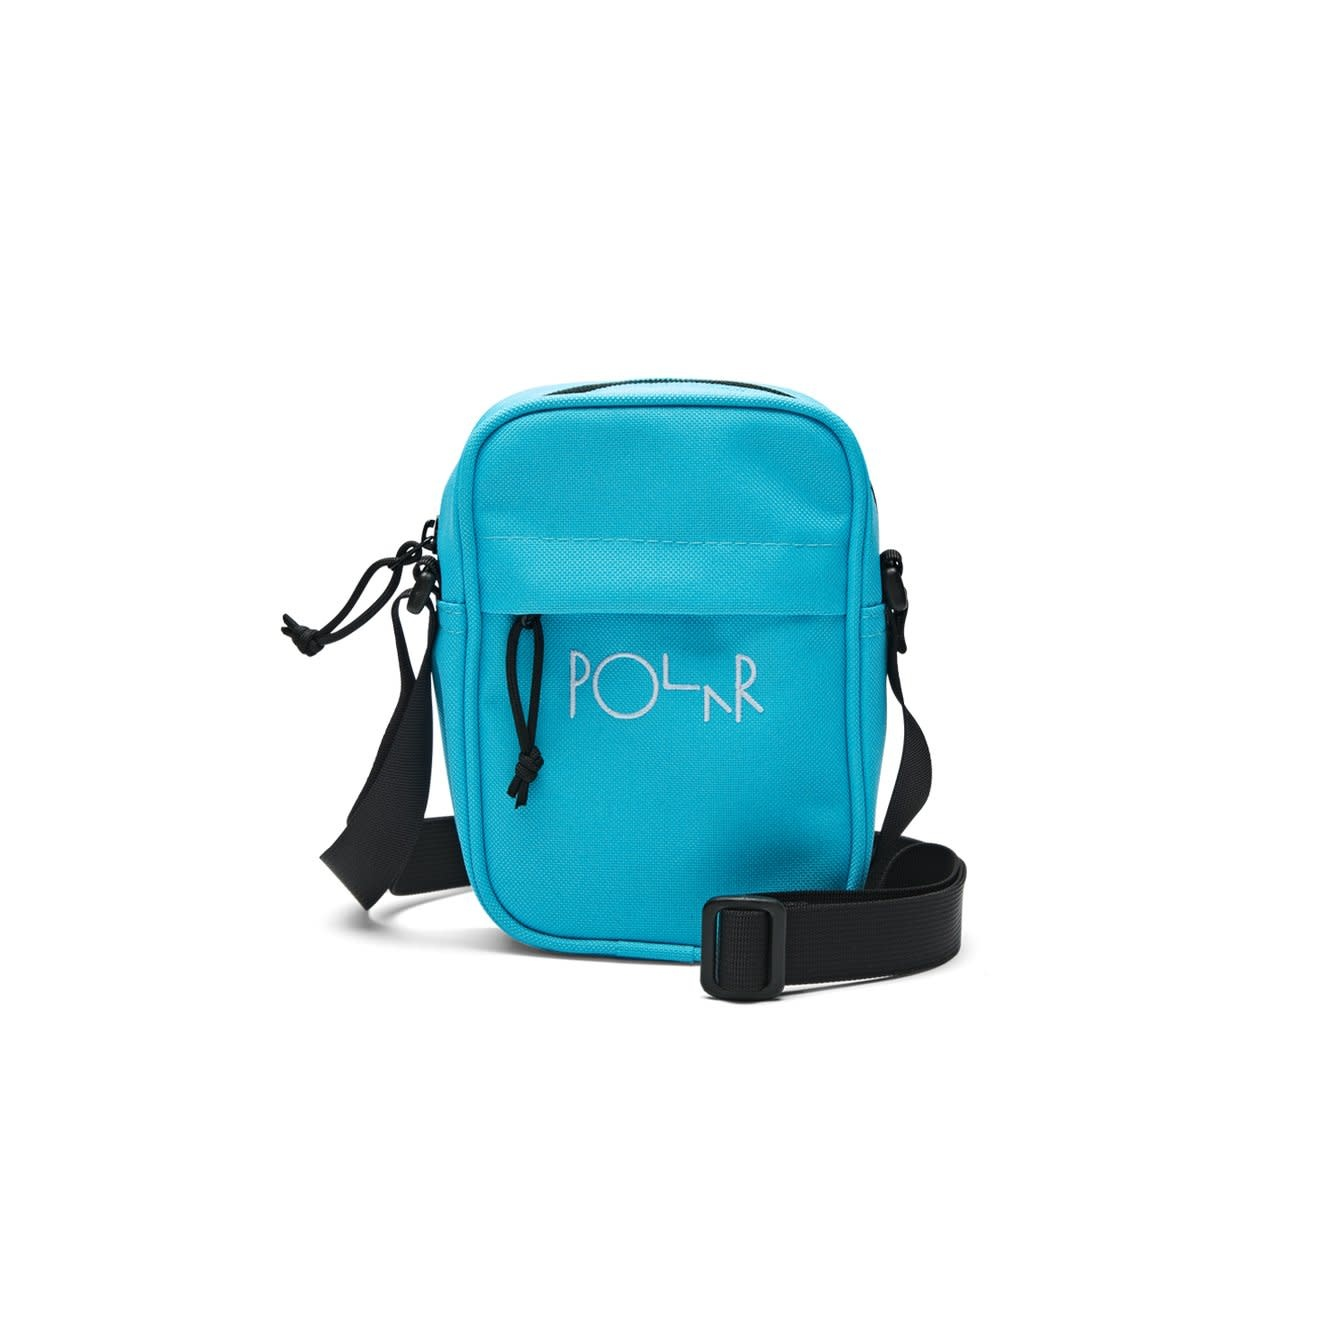 Polar Skate Co. Cordura Mini Dealer Bag Aqua